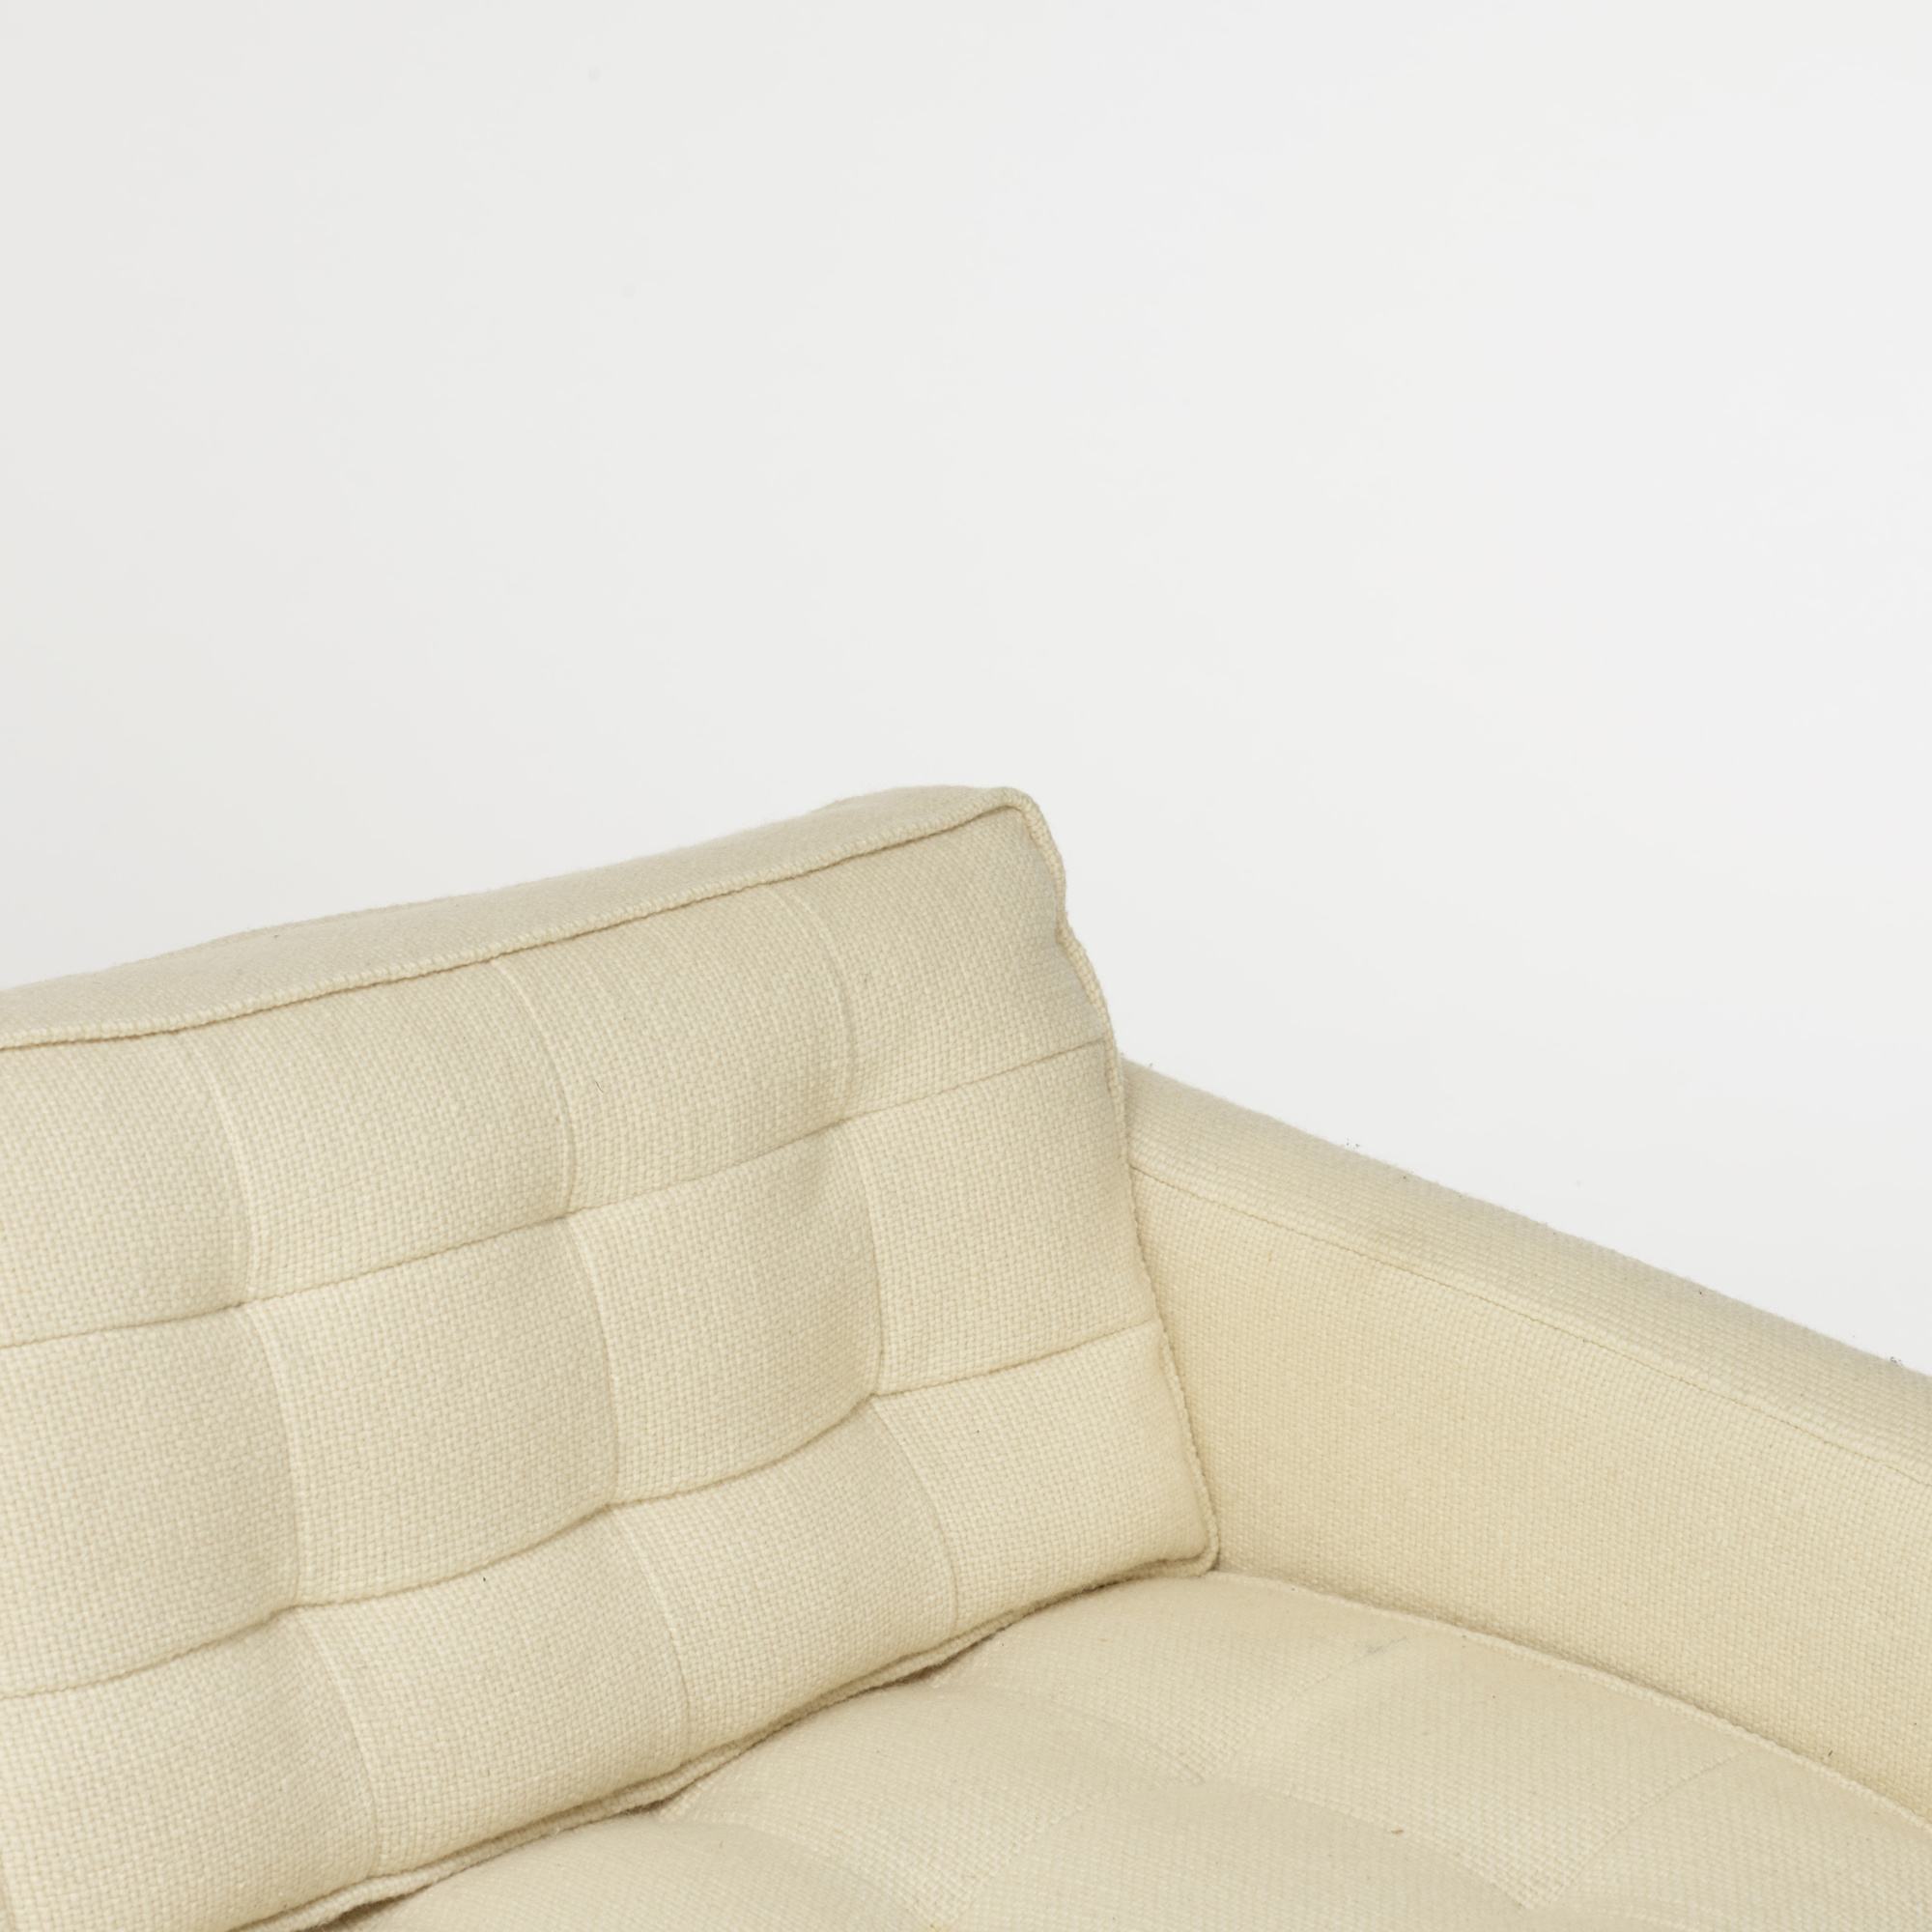 393: Florence Knoll / sofa (3 of 3)